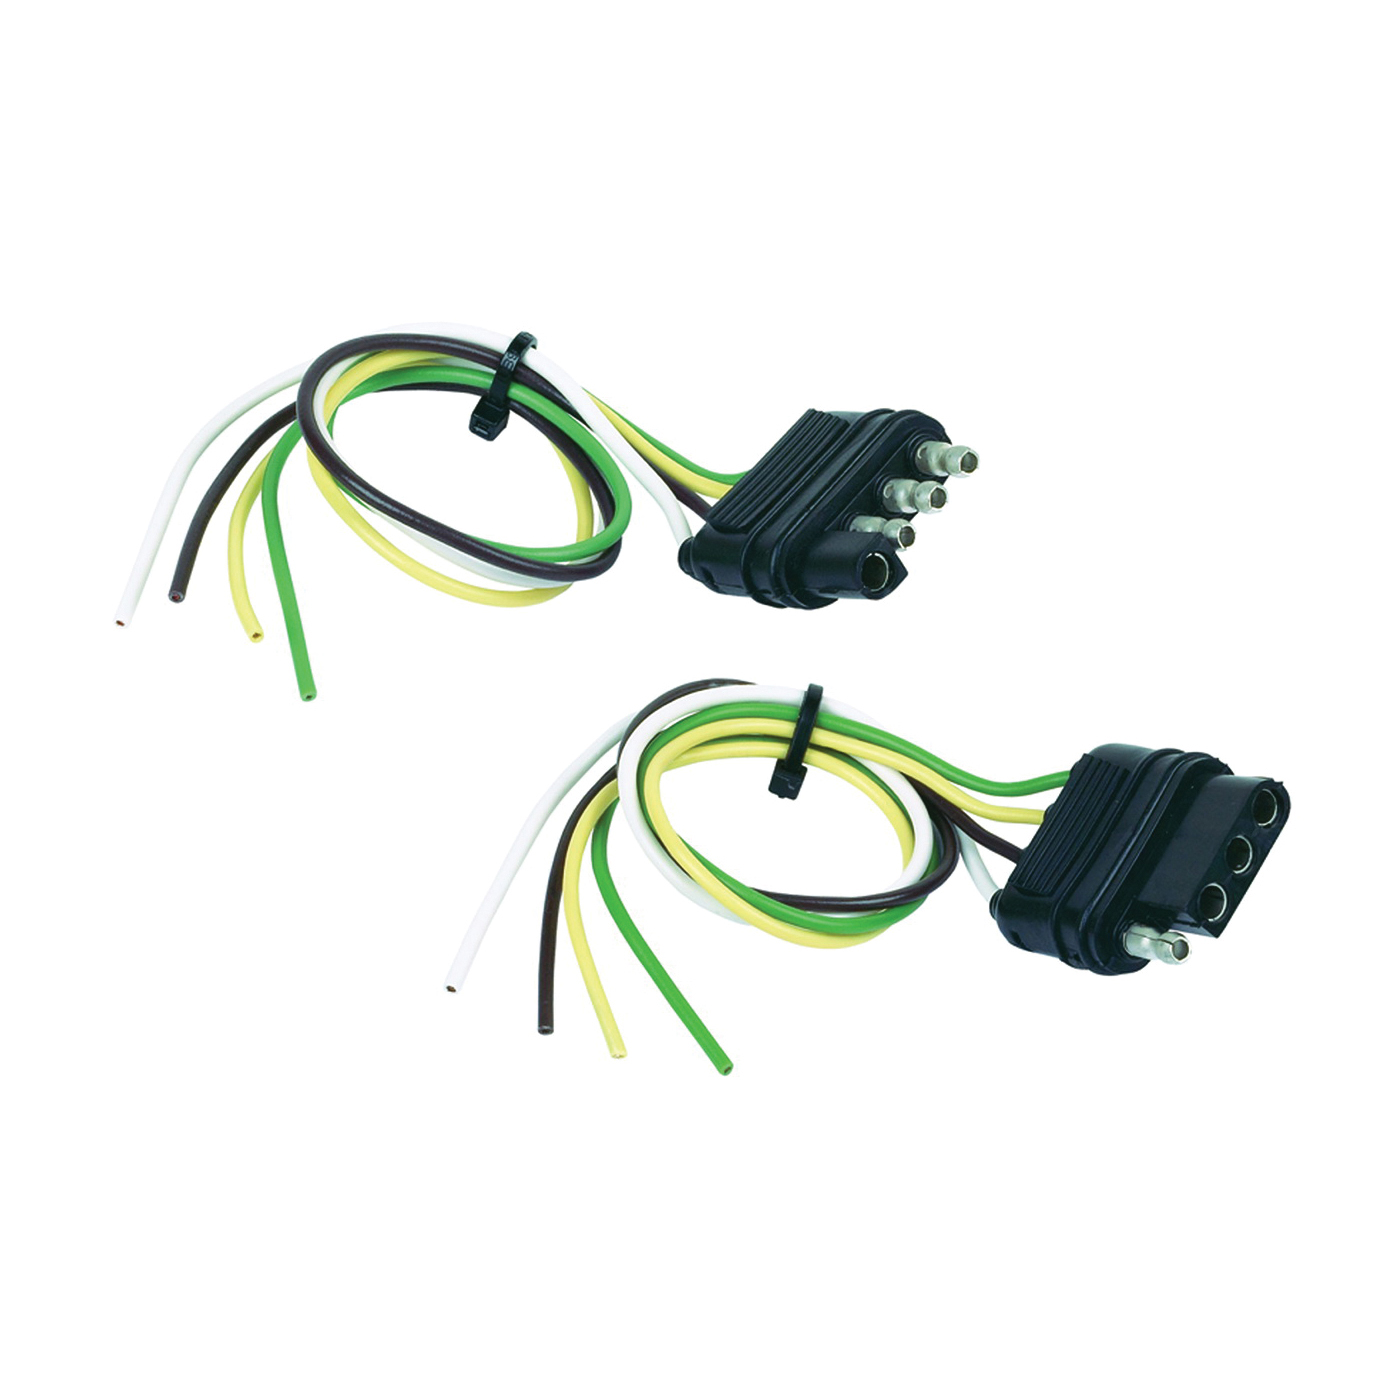 Picture of HOPKINS 48175 Trailer Connector Set